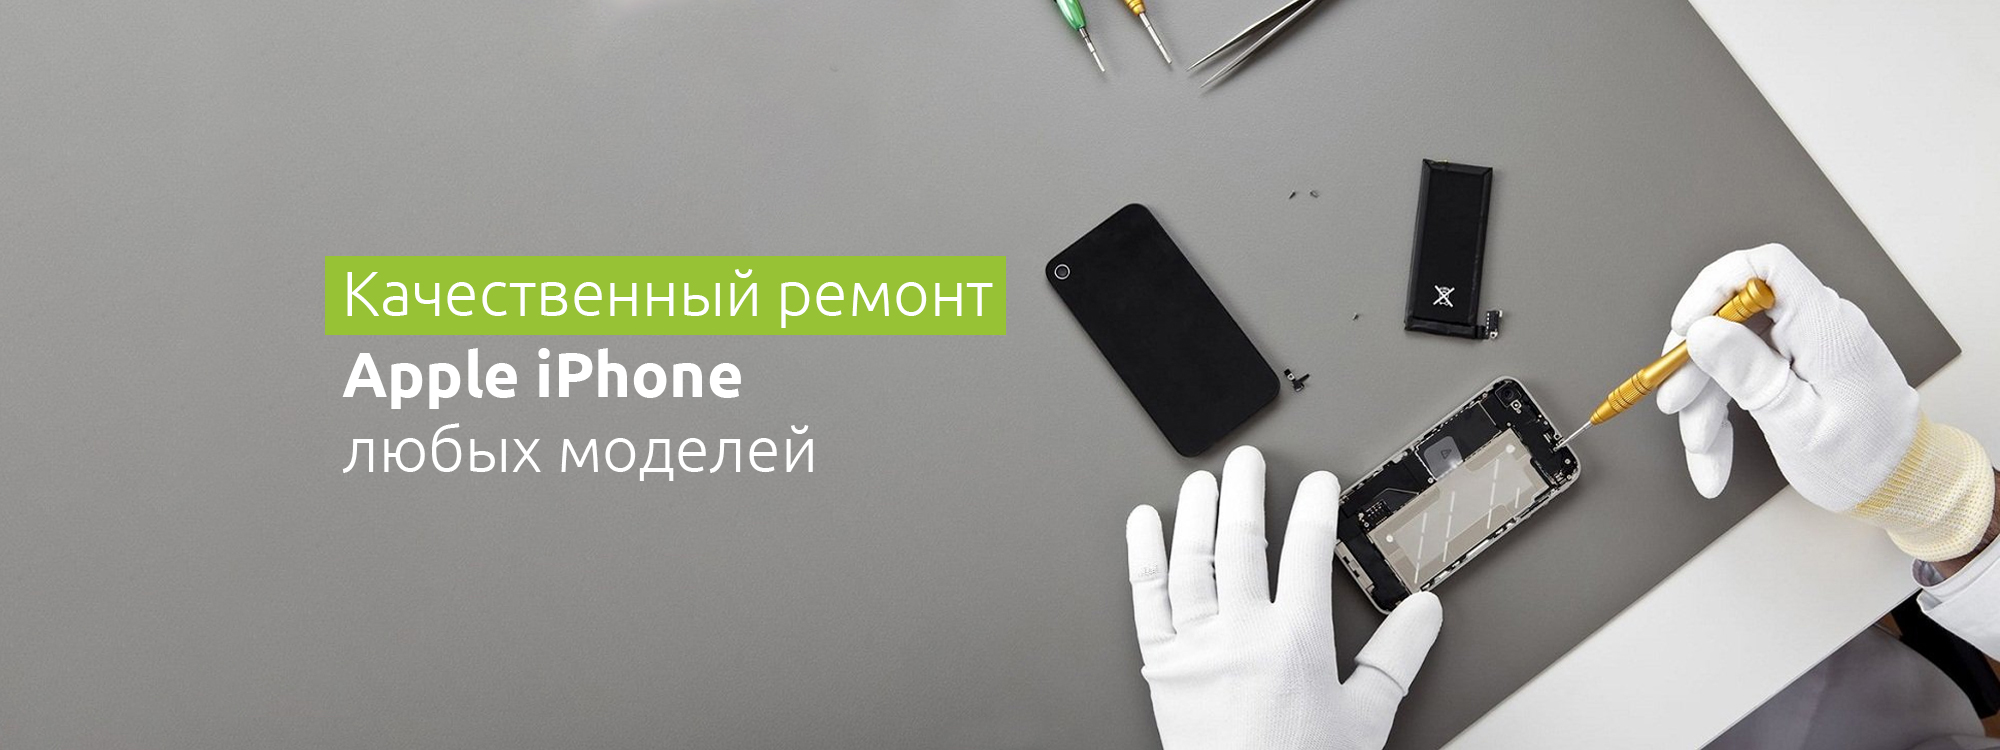 ремонт apple iphone москва